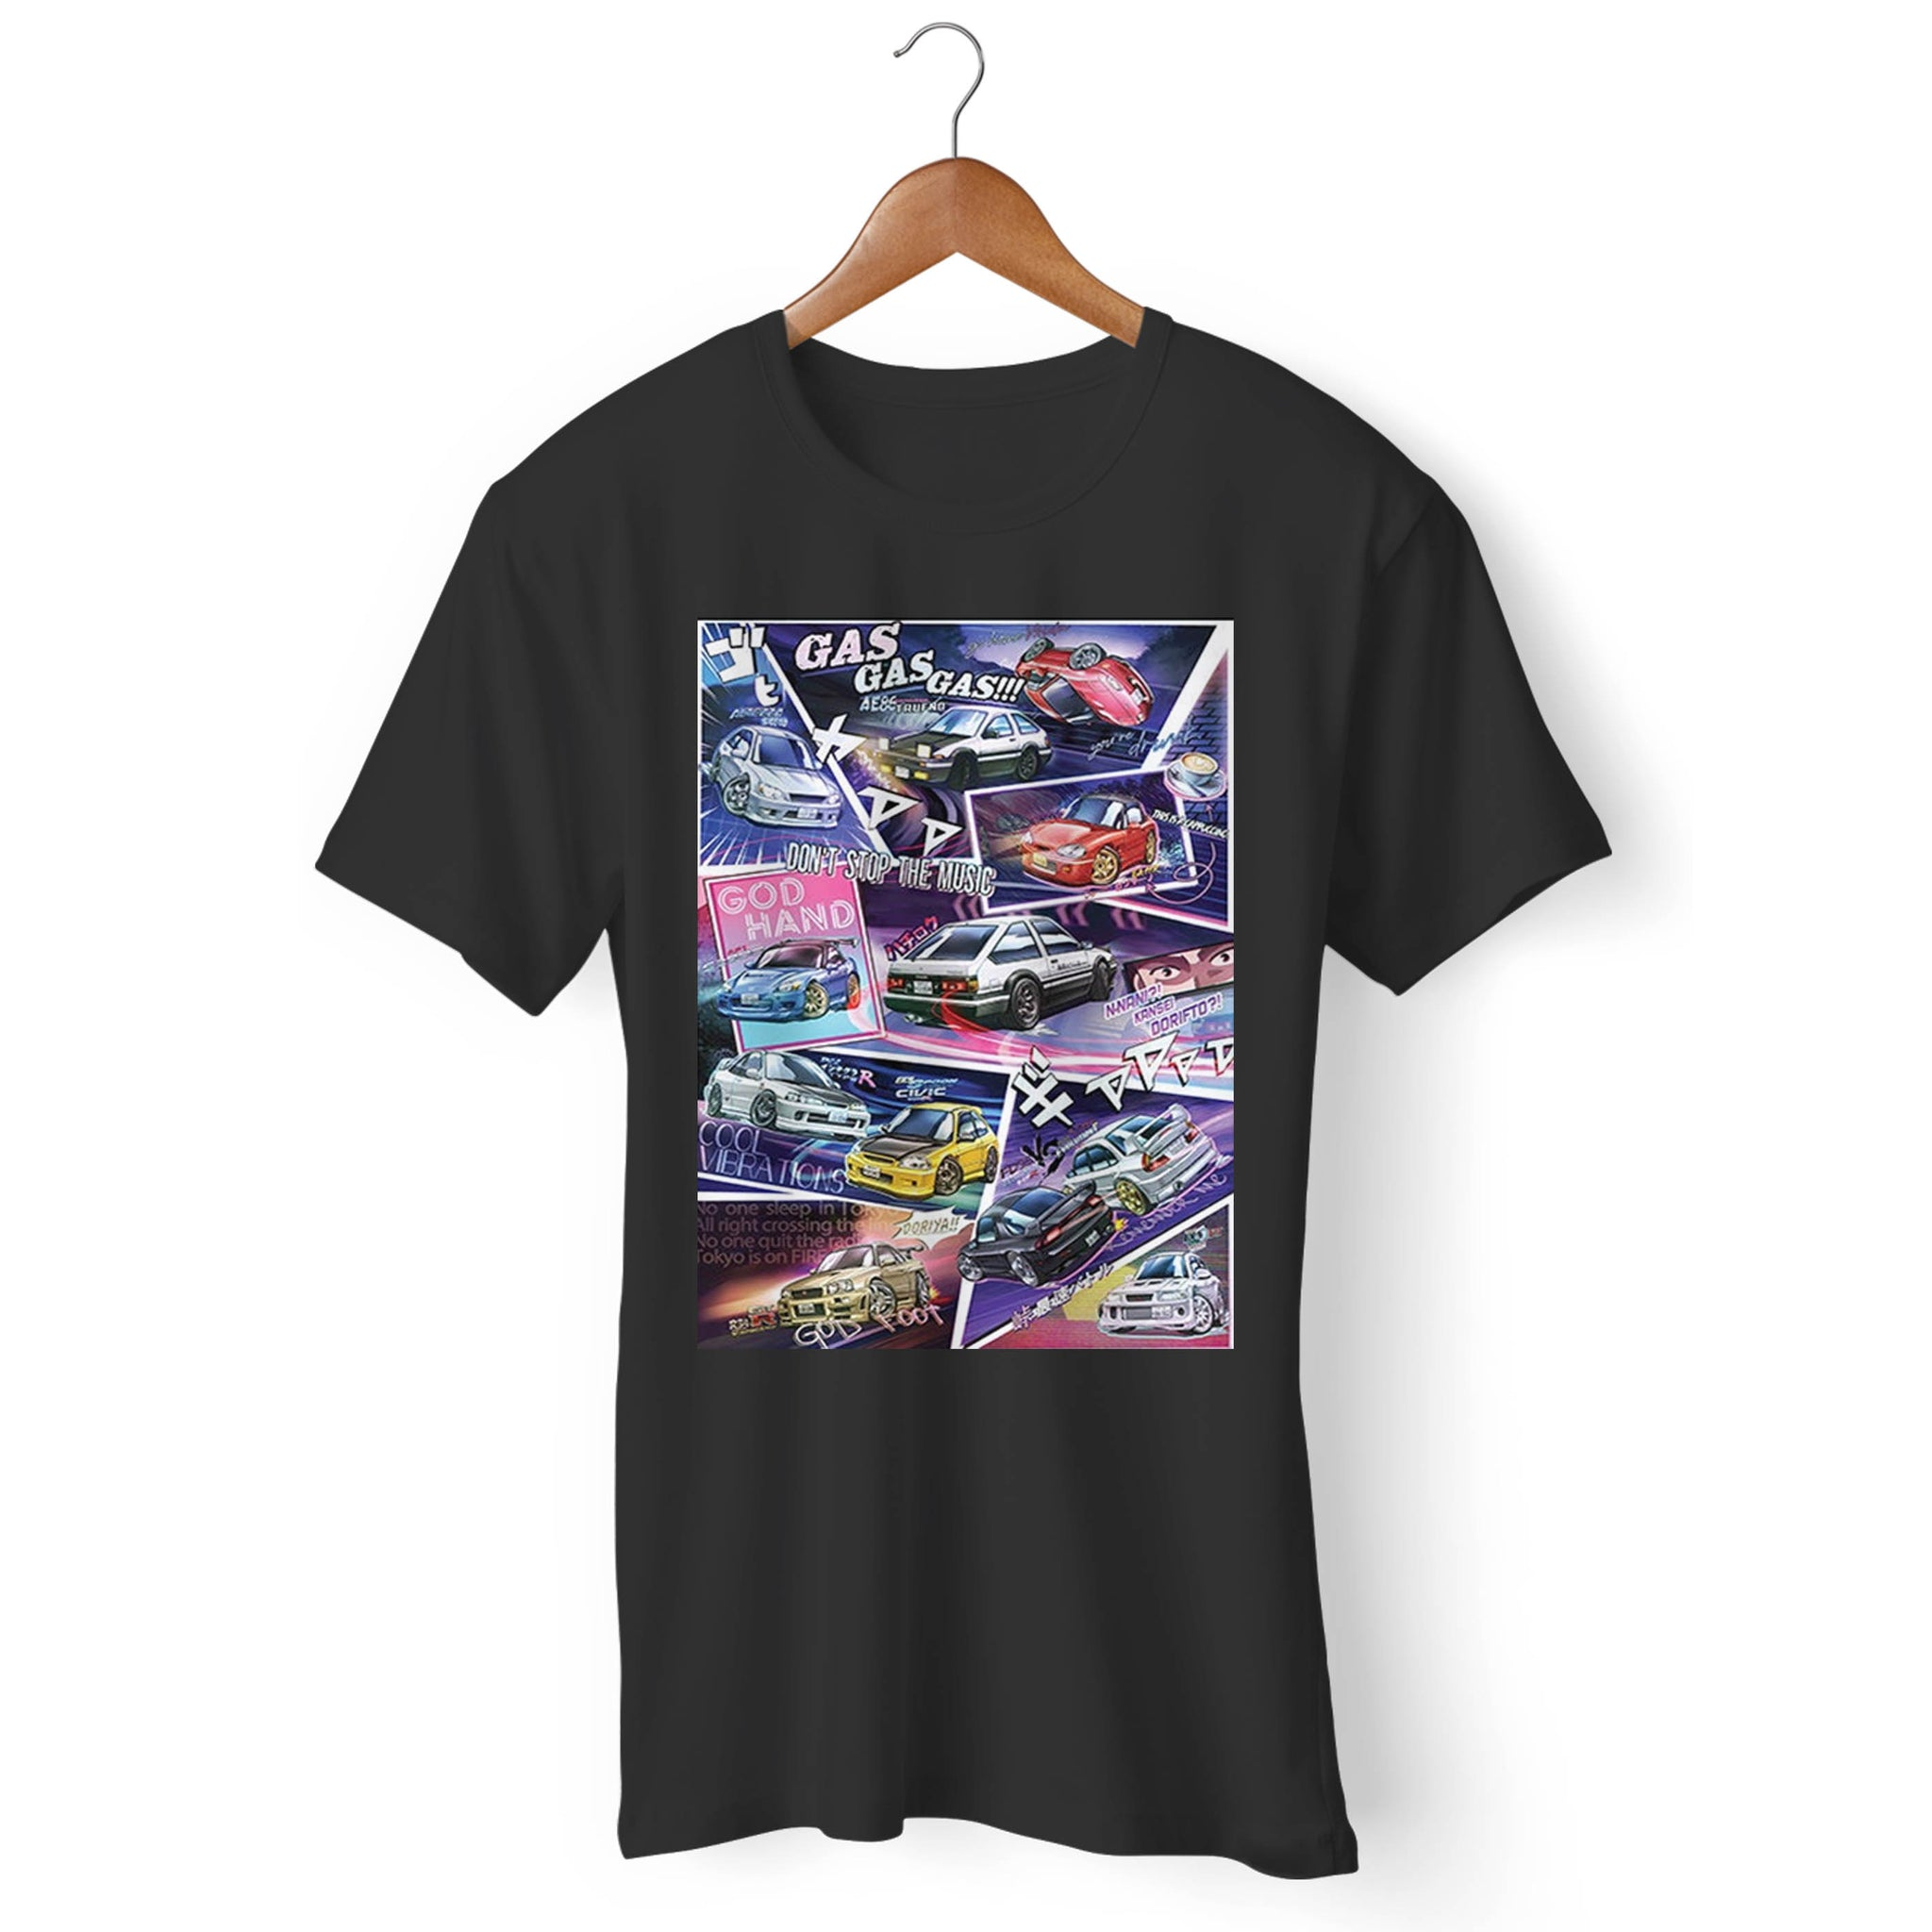 Initial D Manga Styled Car Man's T-Shirt